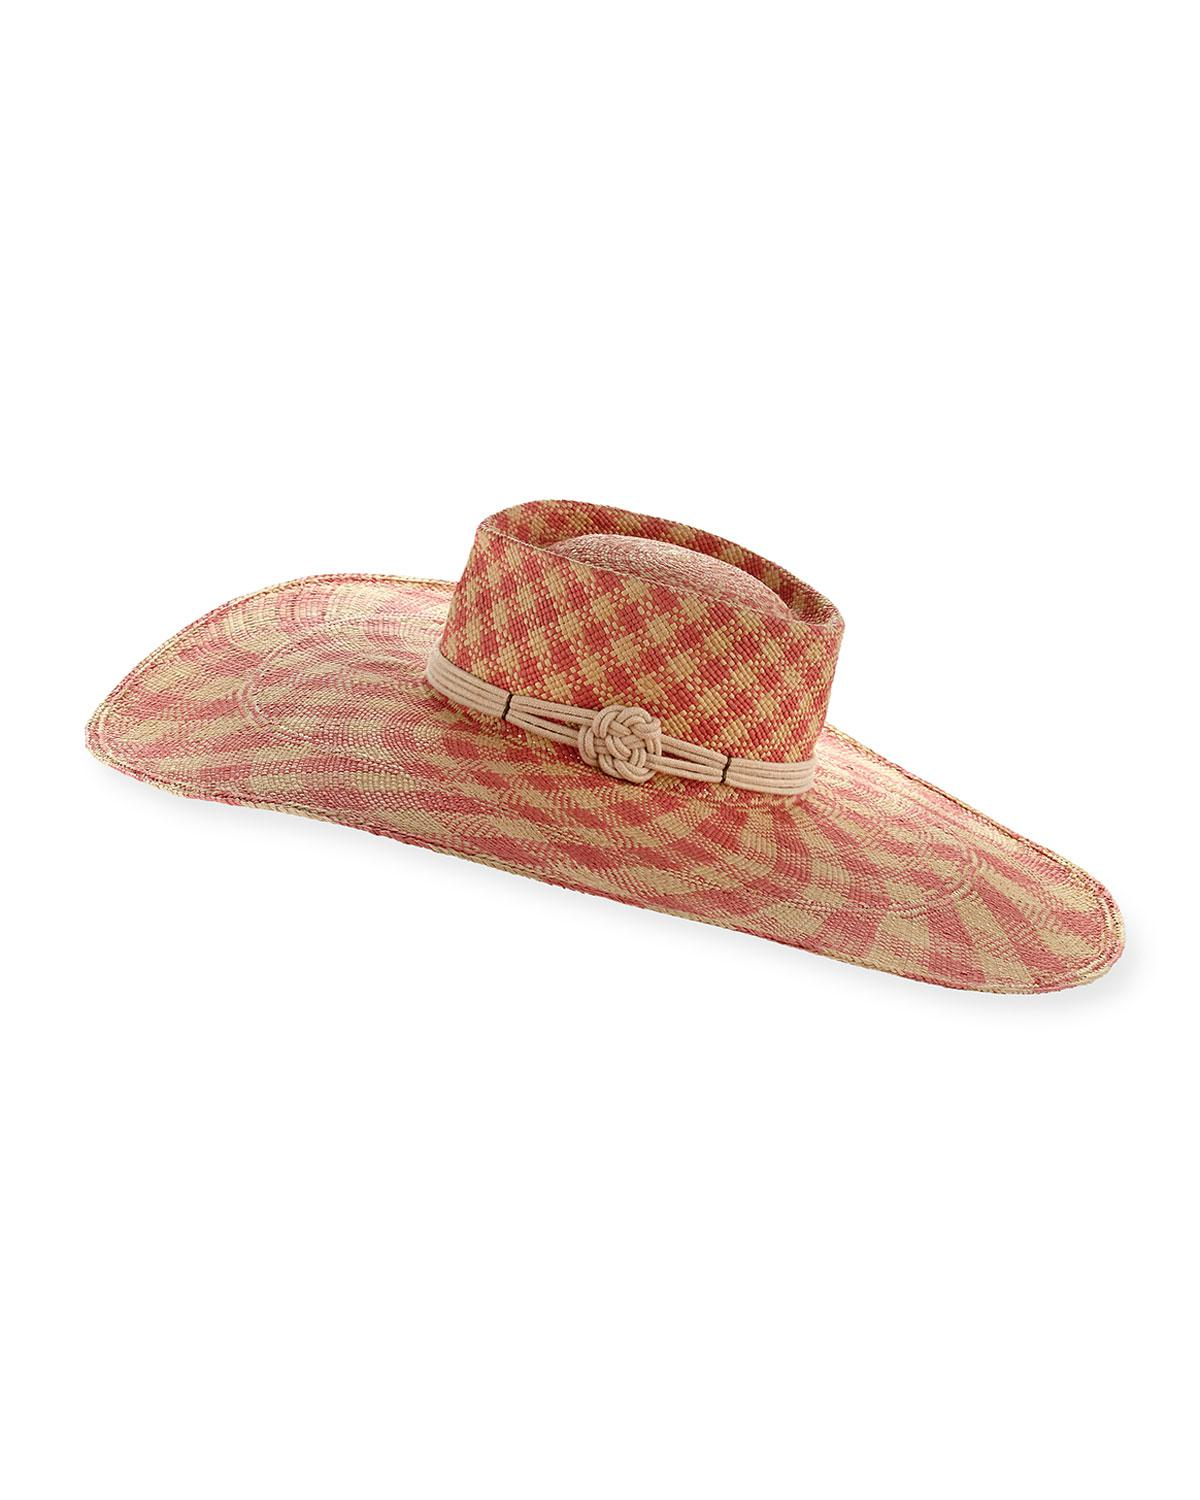 Lyst - Gladys Tamez Millinery The Monroe Checkered Panama Hat in Pink d79f043785c0